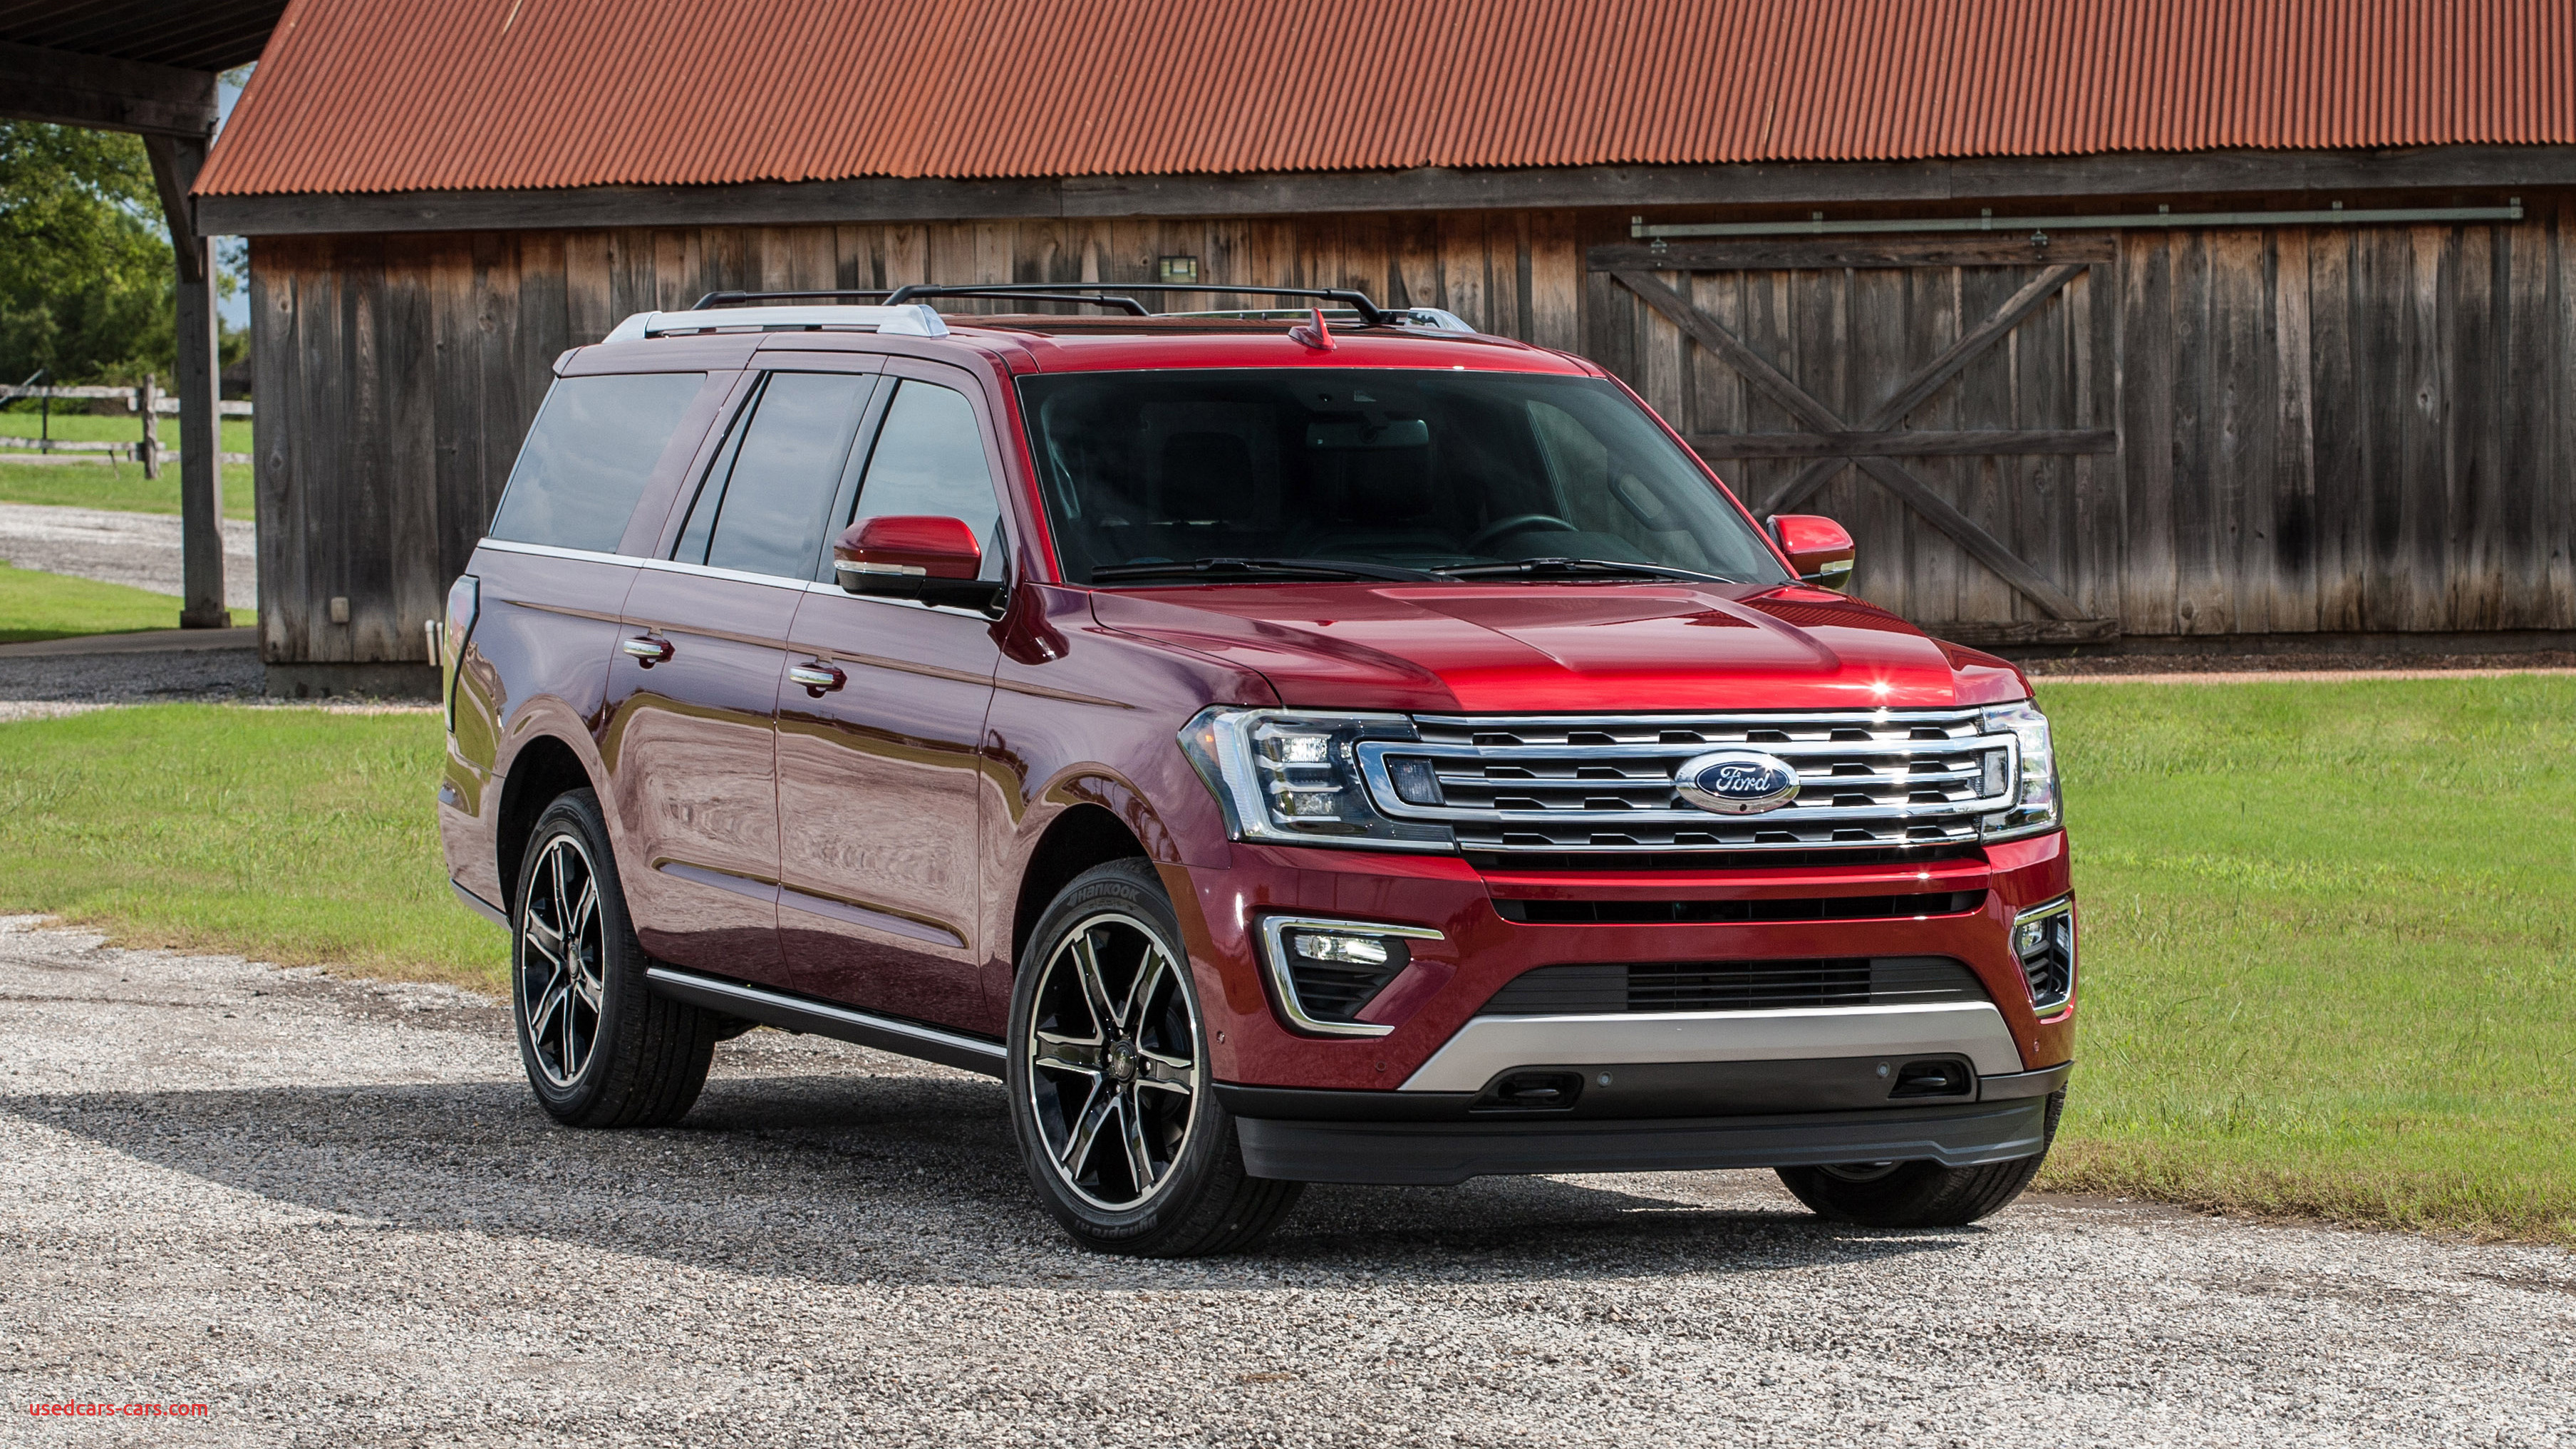 2019 Ford Expedition Texas Edition 3